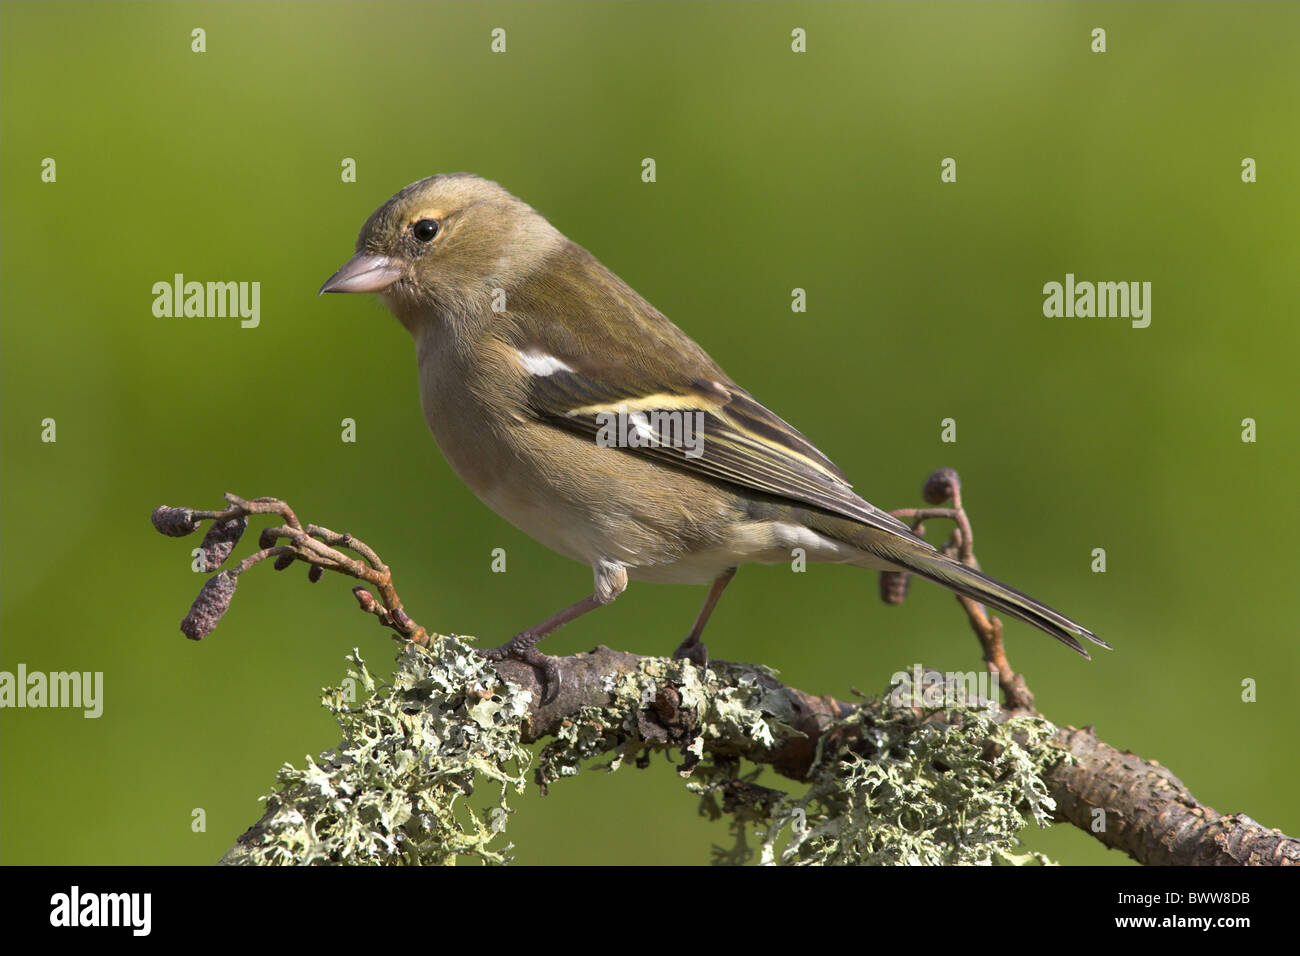 Chaffinch (Fringilla coelebs) adult female, perched on lichen covered twig, in garden, Berwickshire, Scotland, spring - Stock Image